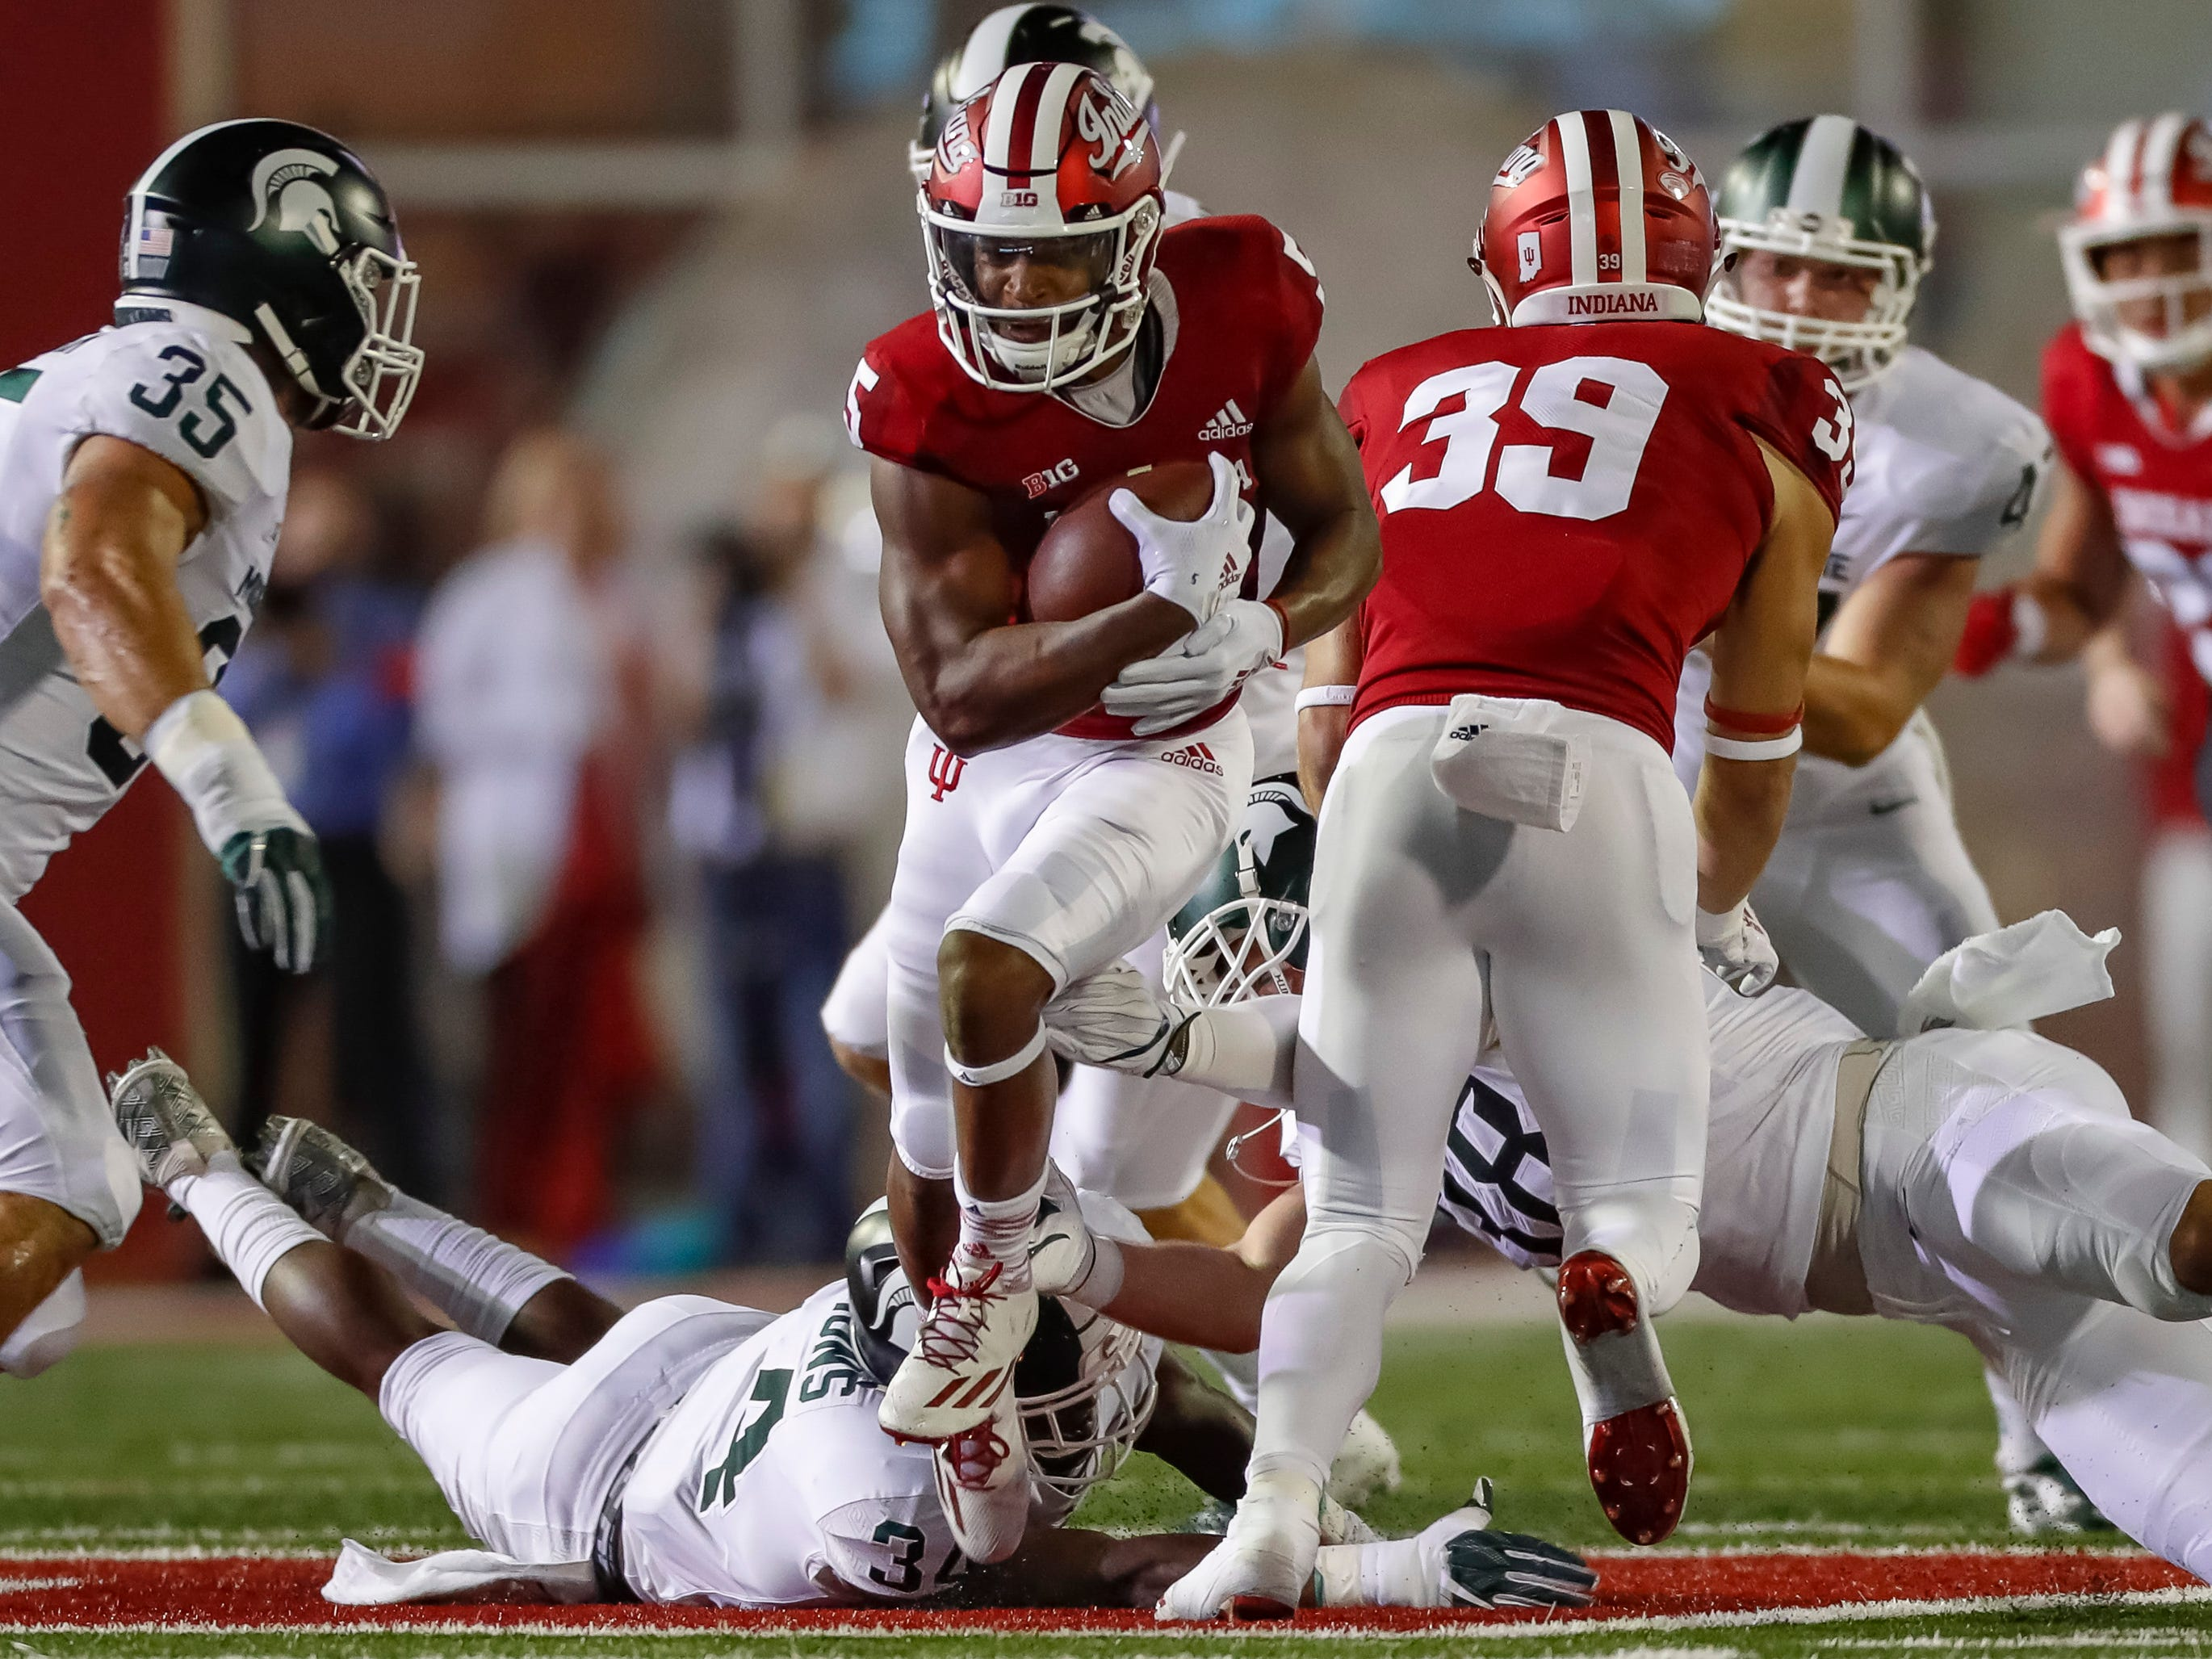 J-Shun Harris II #5 of the Indiana Hoosiers runs the ball against the Michigan State Spartans during the second quarter at Memorial Stadium on September 22, 2018 in Bloomington, Indiana.